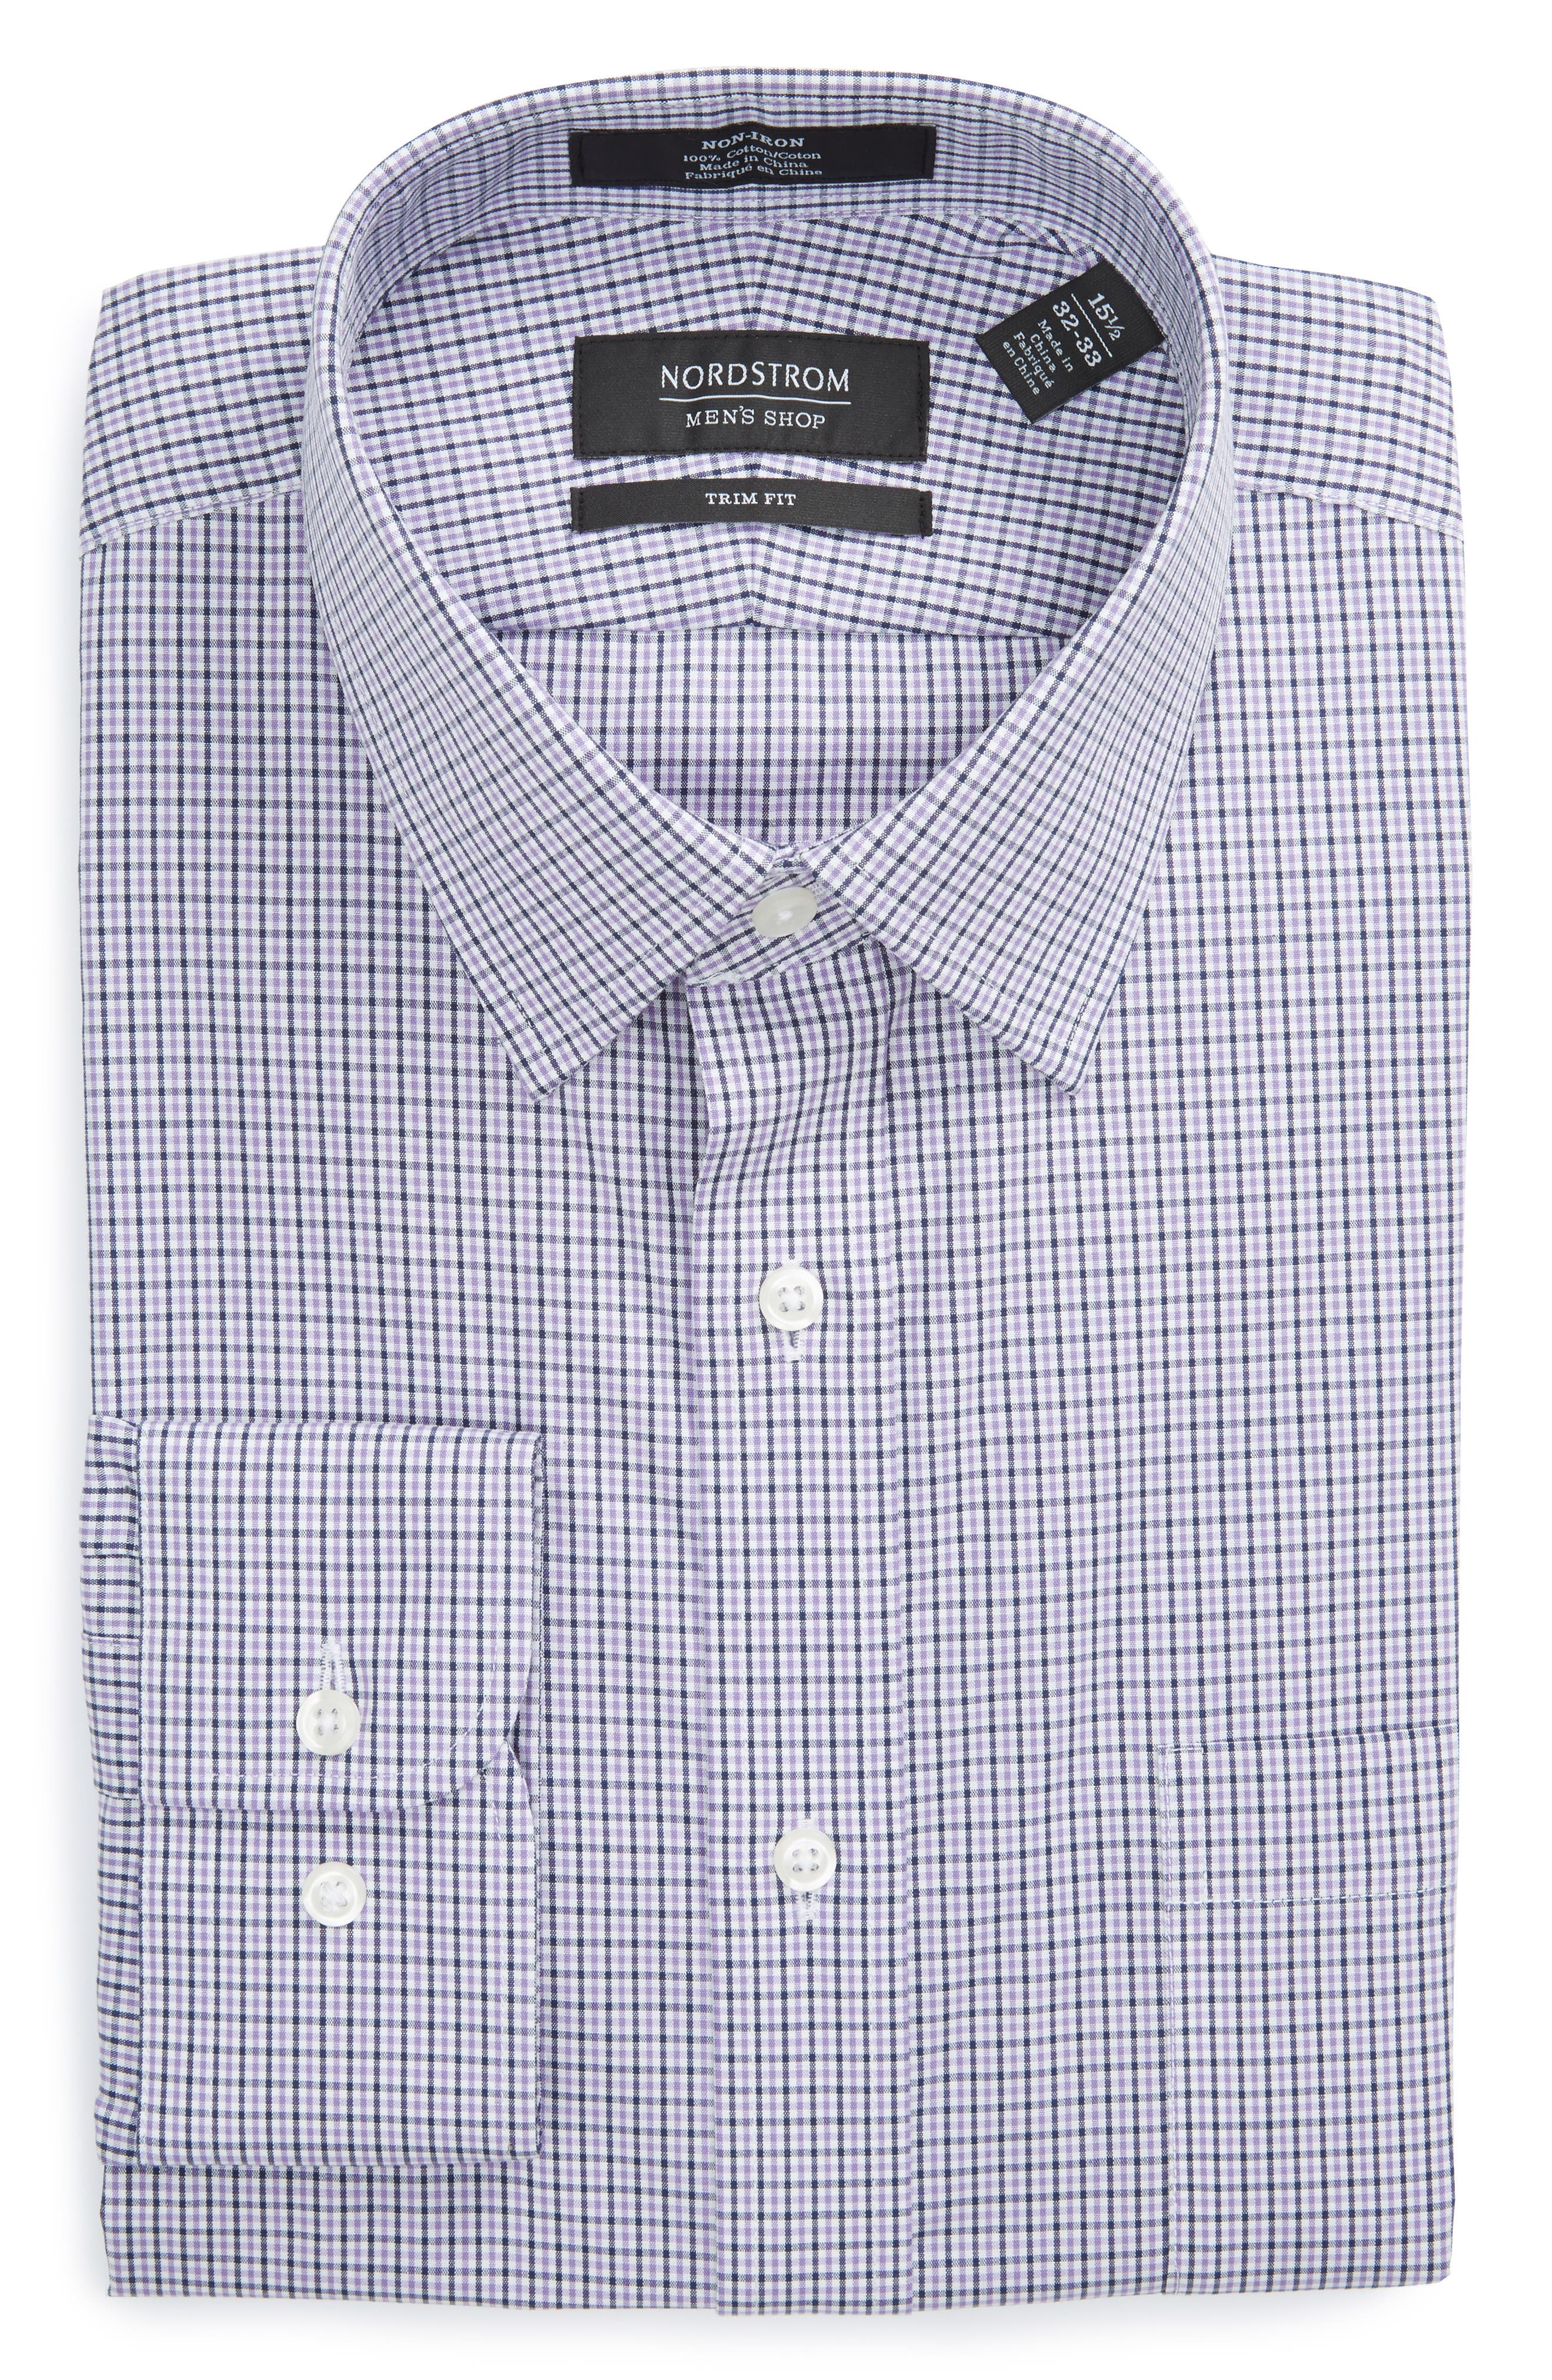 NORDSTROM MENS SHOP Trim Fit Non-Iron Check Dress Shirt